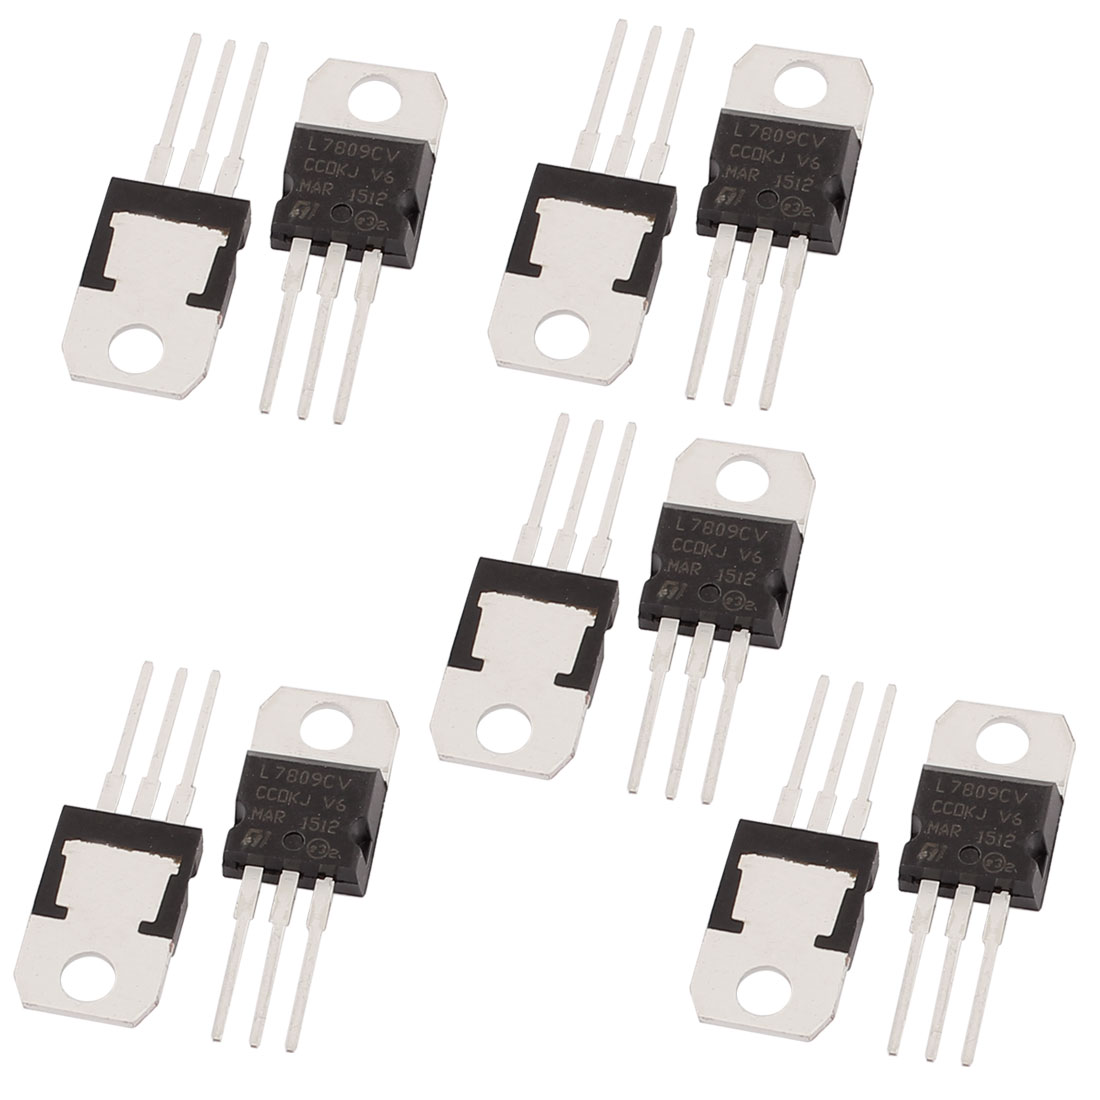 10 Pcs 9V 1A 3 Pin Terminals L7809CV Positive Voltage Regulator TO-220